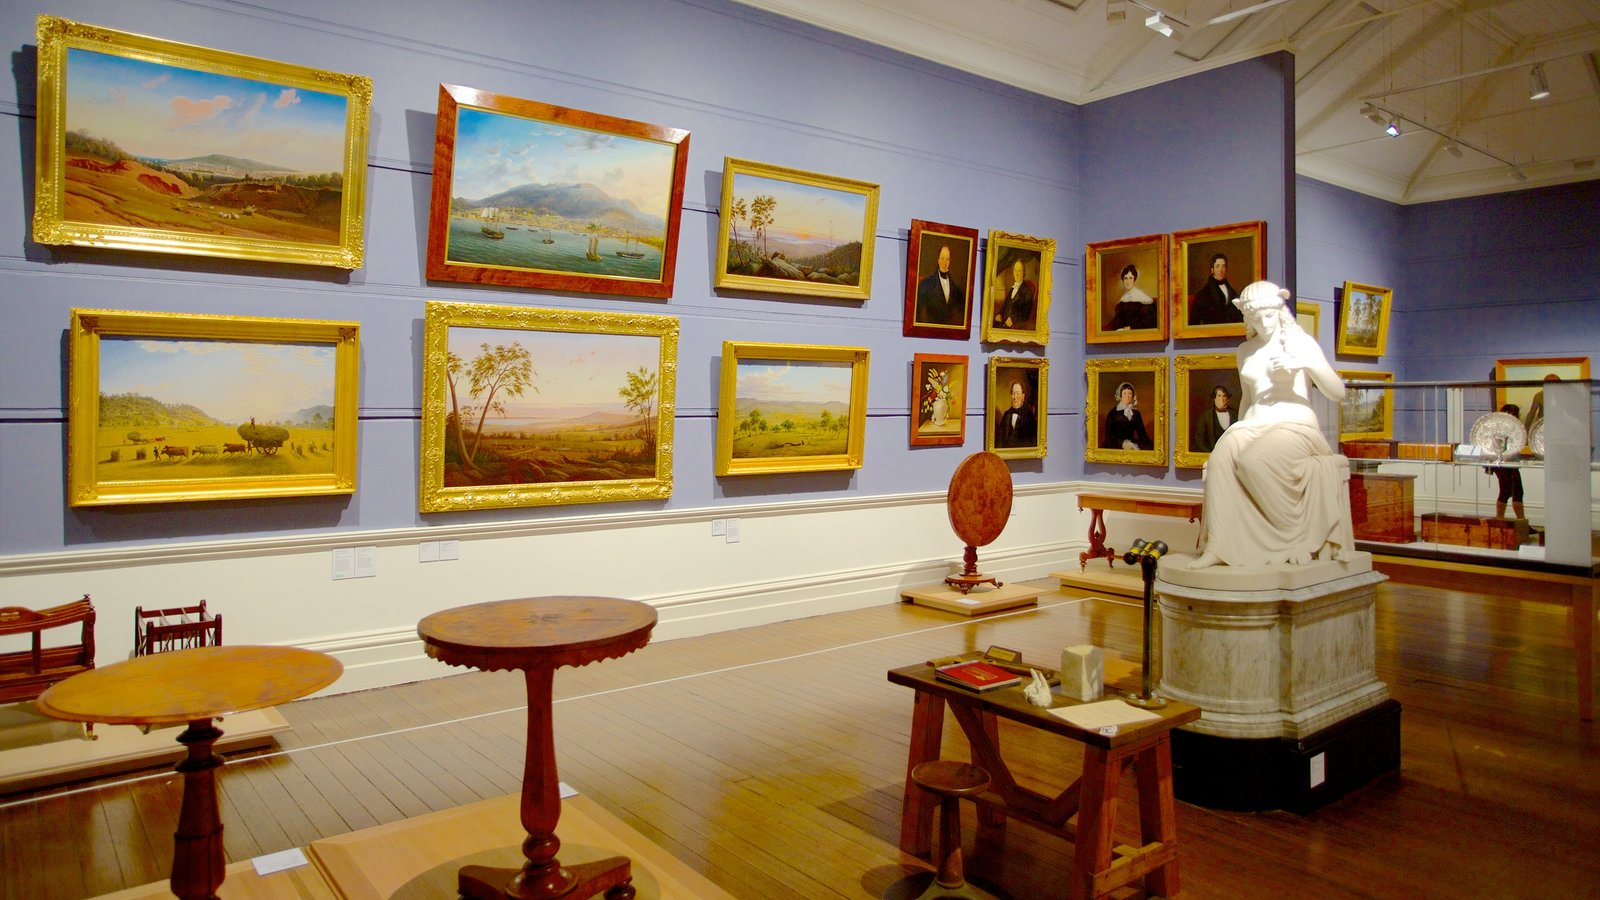 Tasmanian Museum and Art Gallery which includes art and interior views